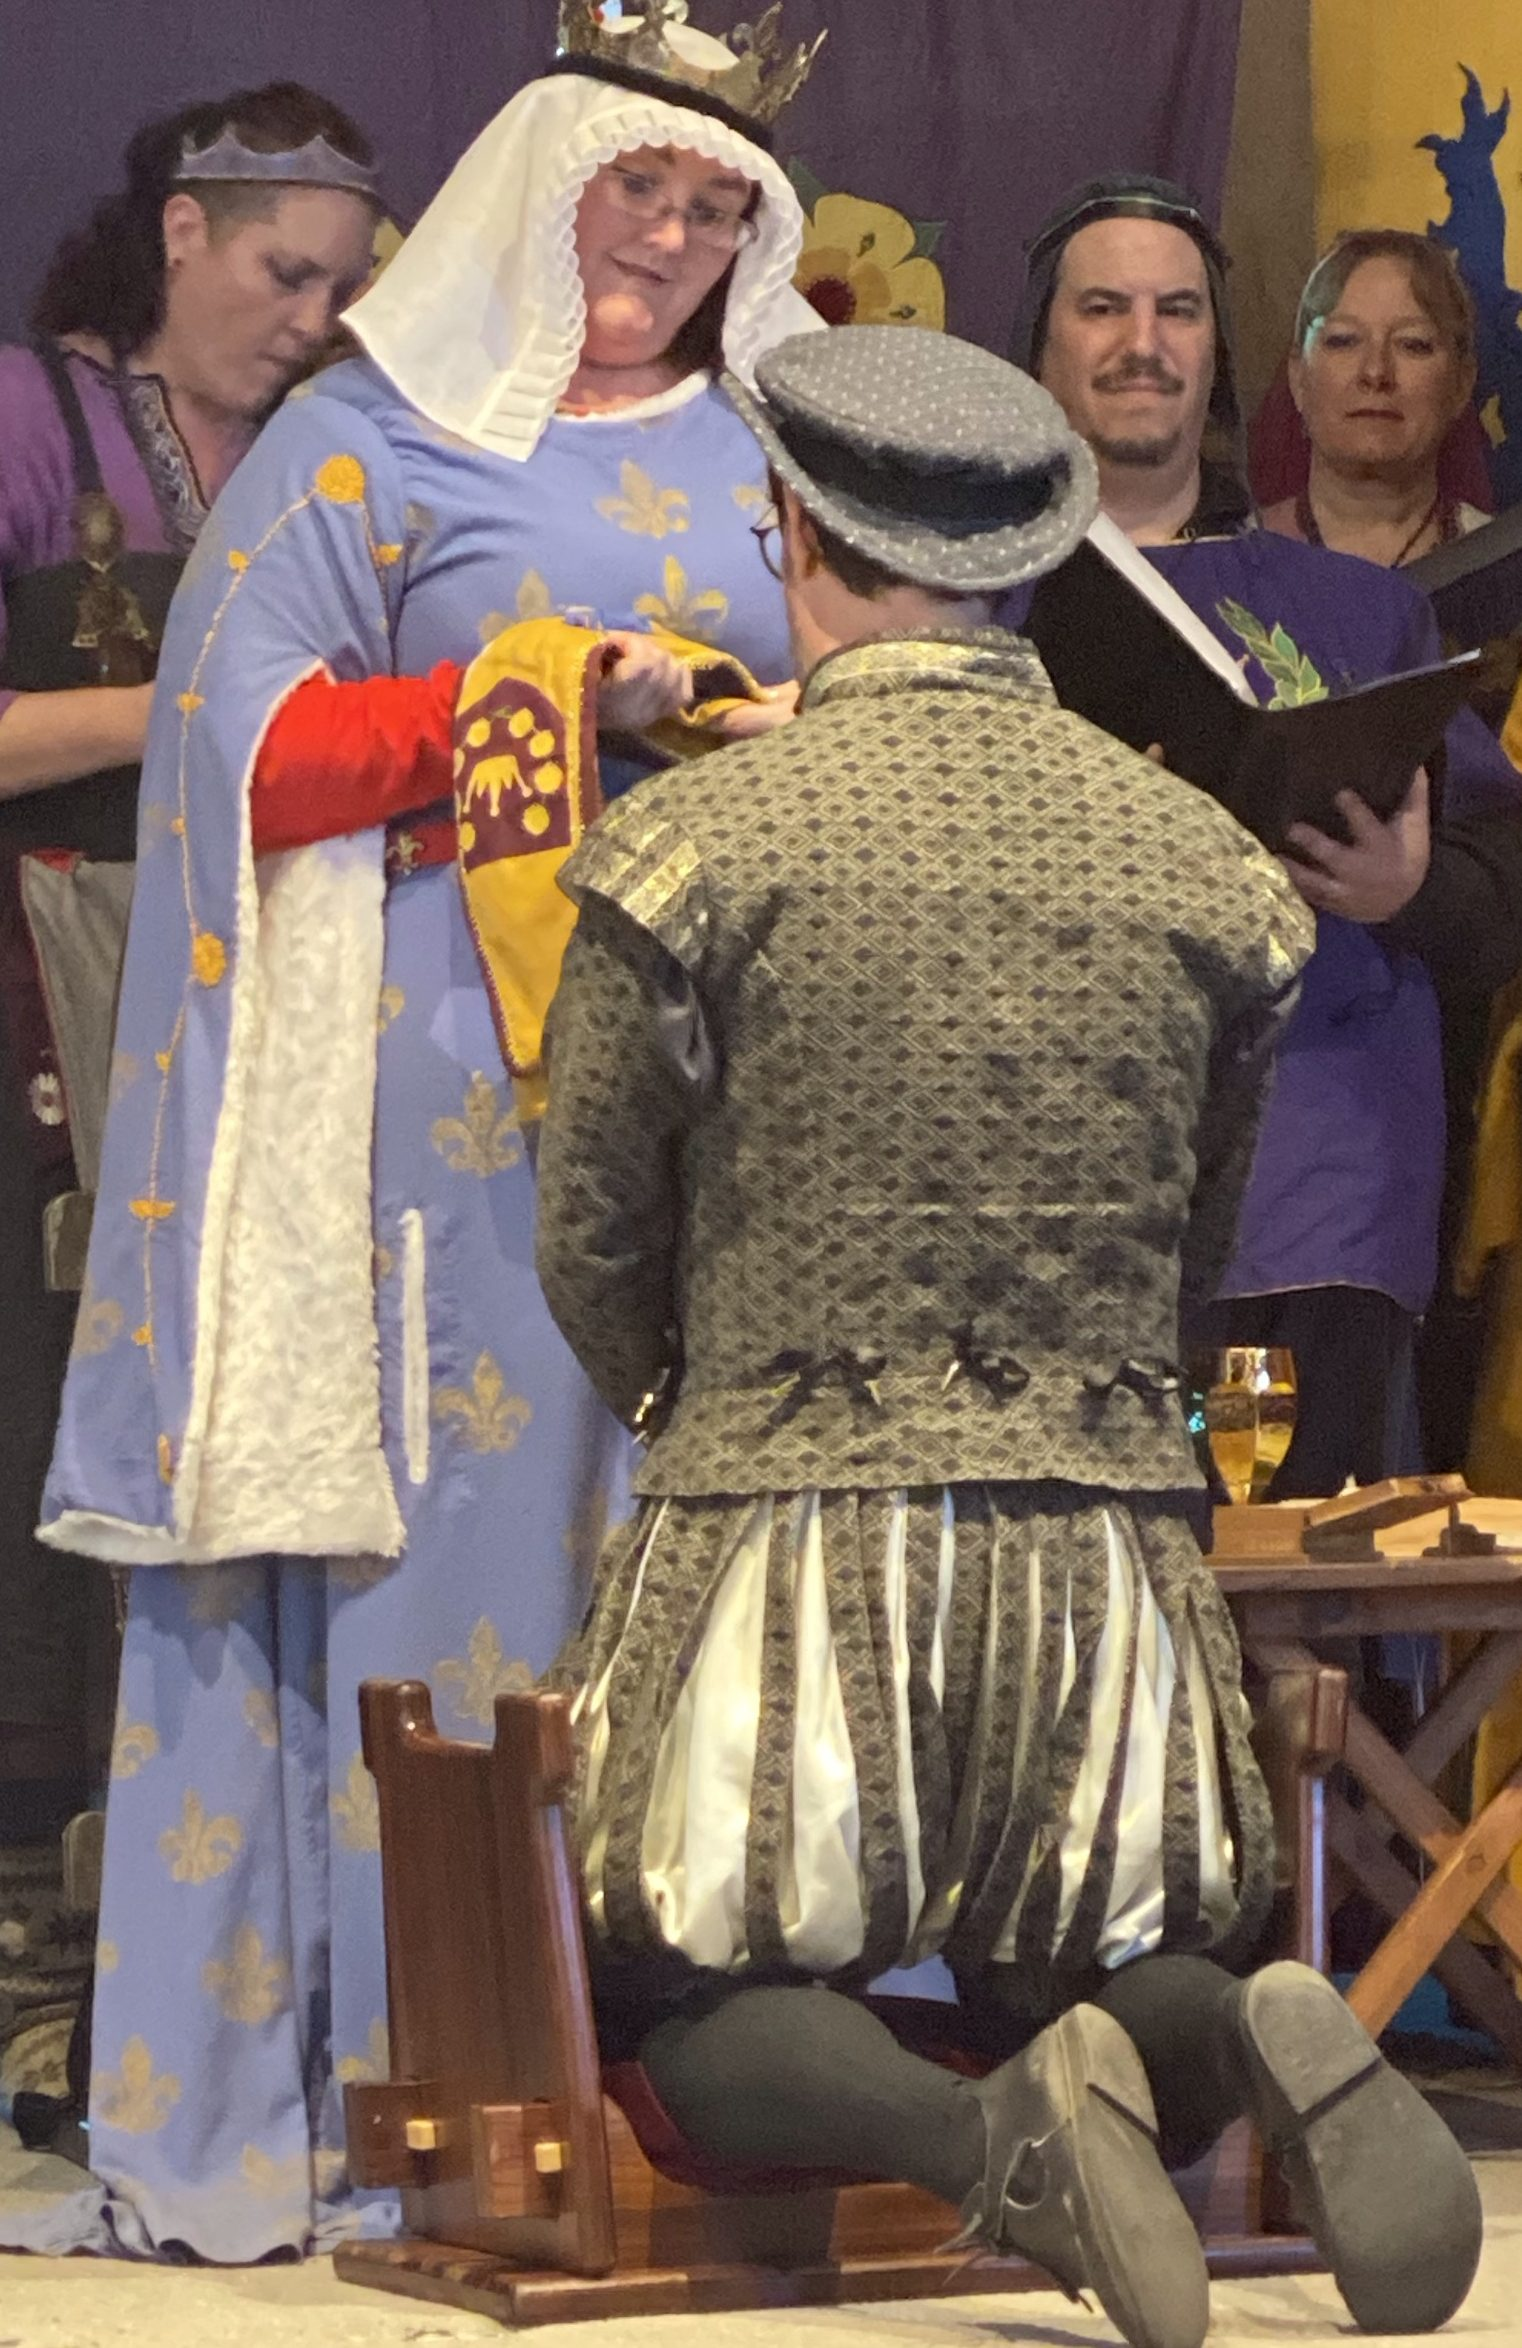 Drake receiving his Queen's Bard baldric from HRM Margarita